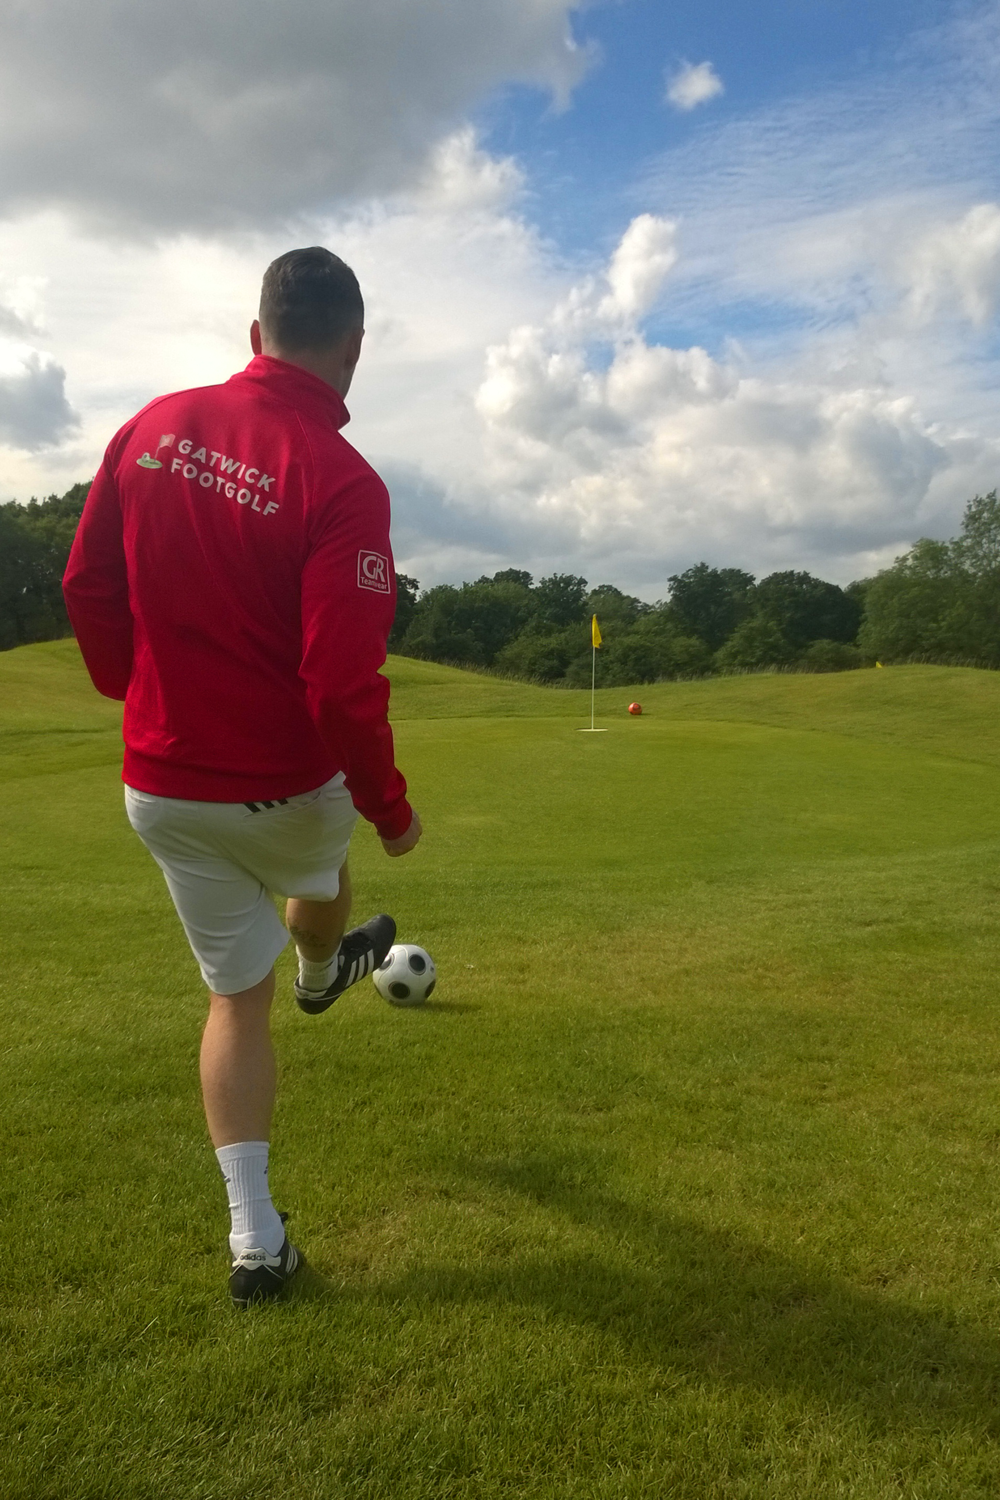 Gatwick Footgolf.png